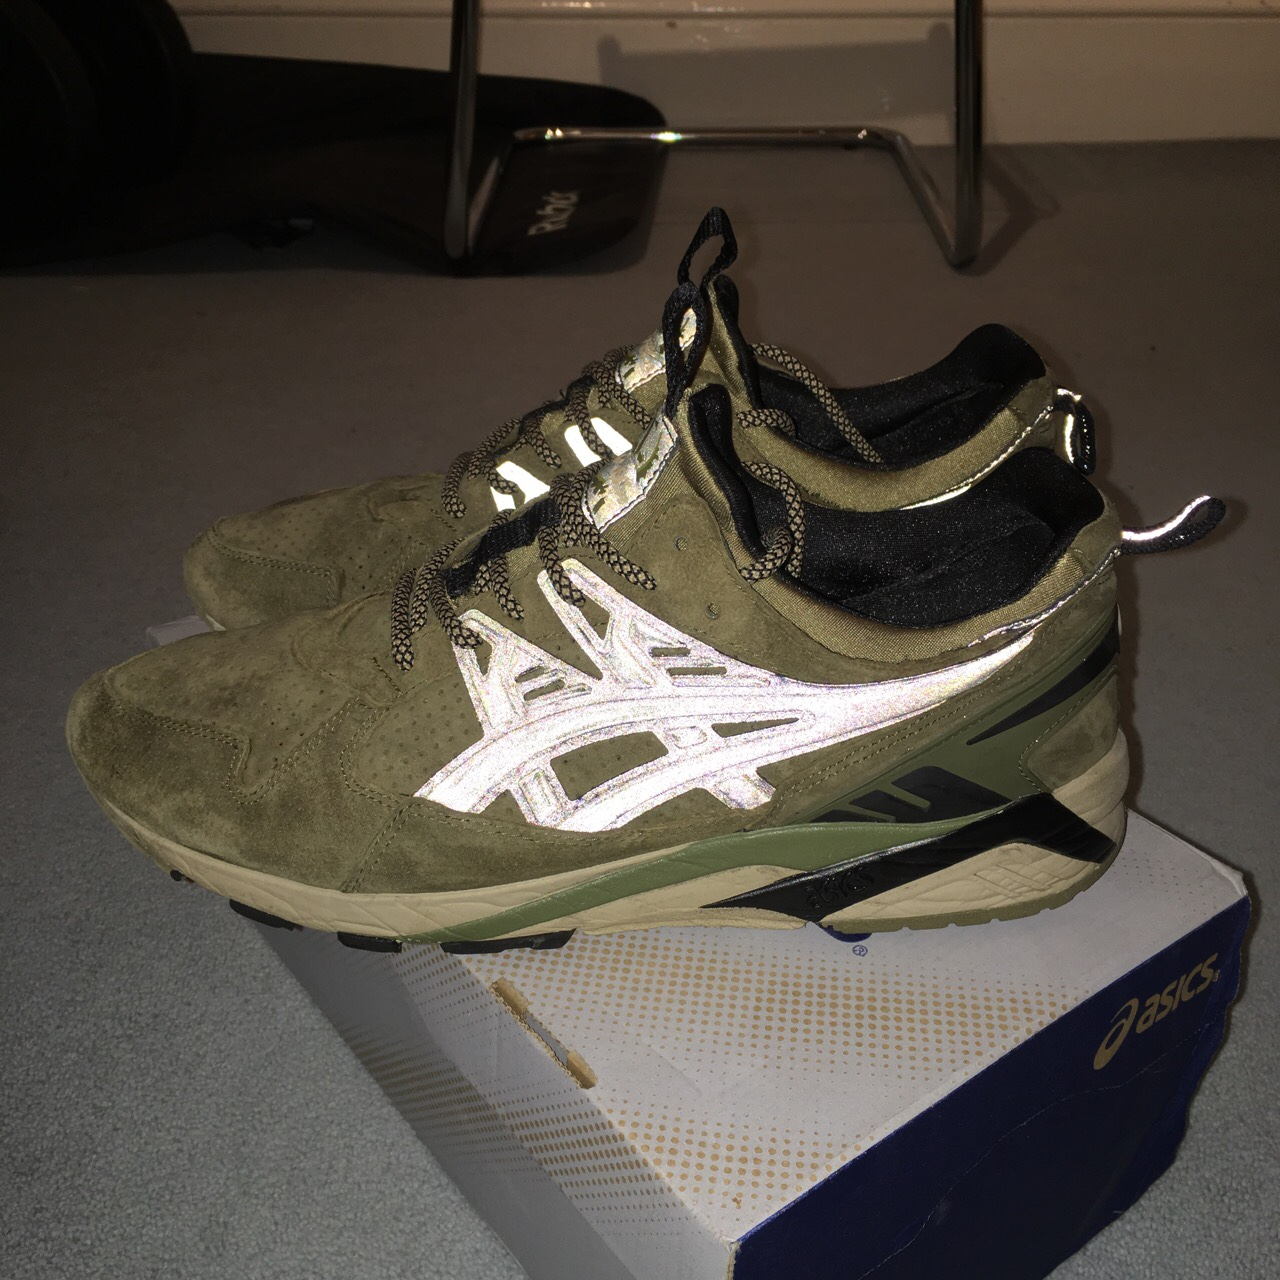 new style 5fa24 c6706 RARE Footpatrol x ASICS GEL Kayano Trainer / UK size ...